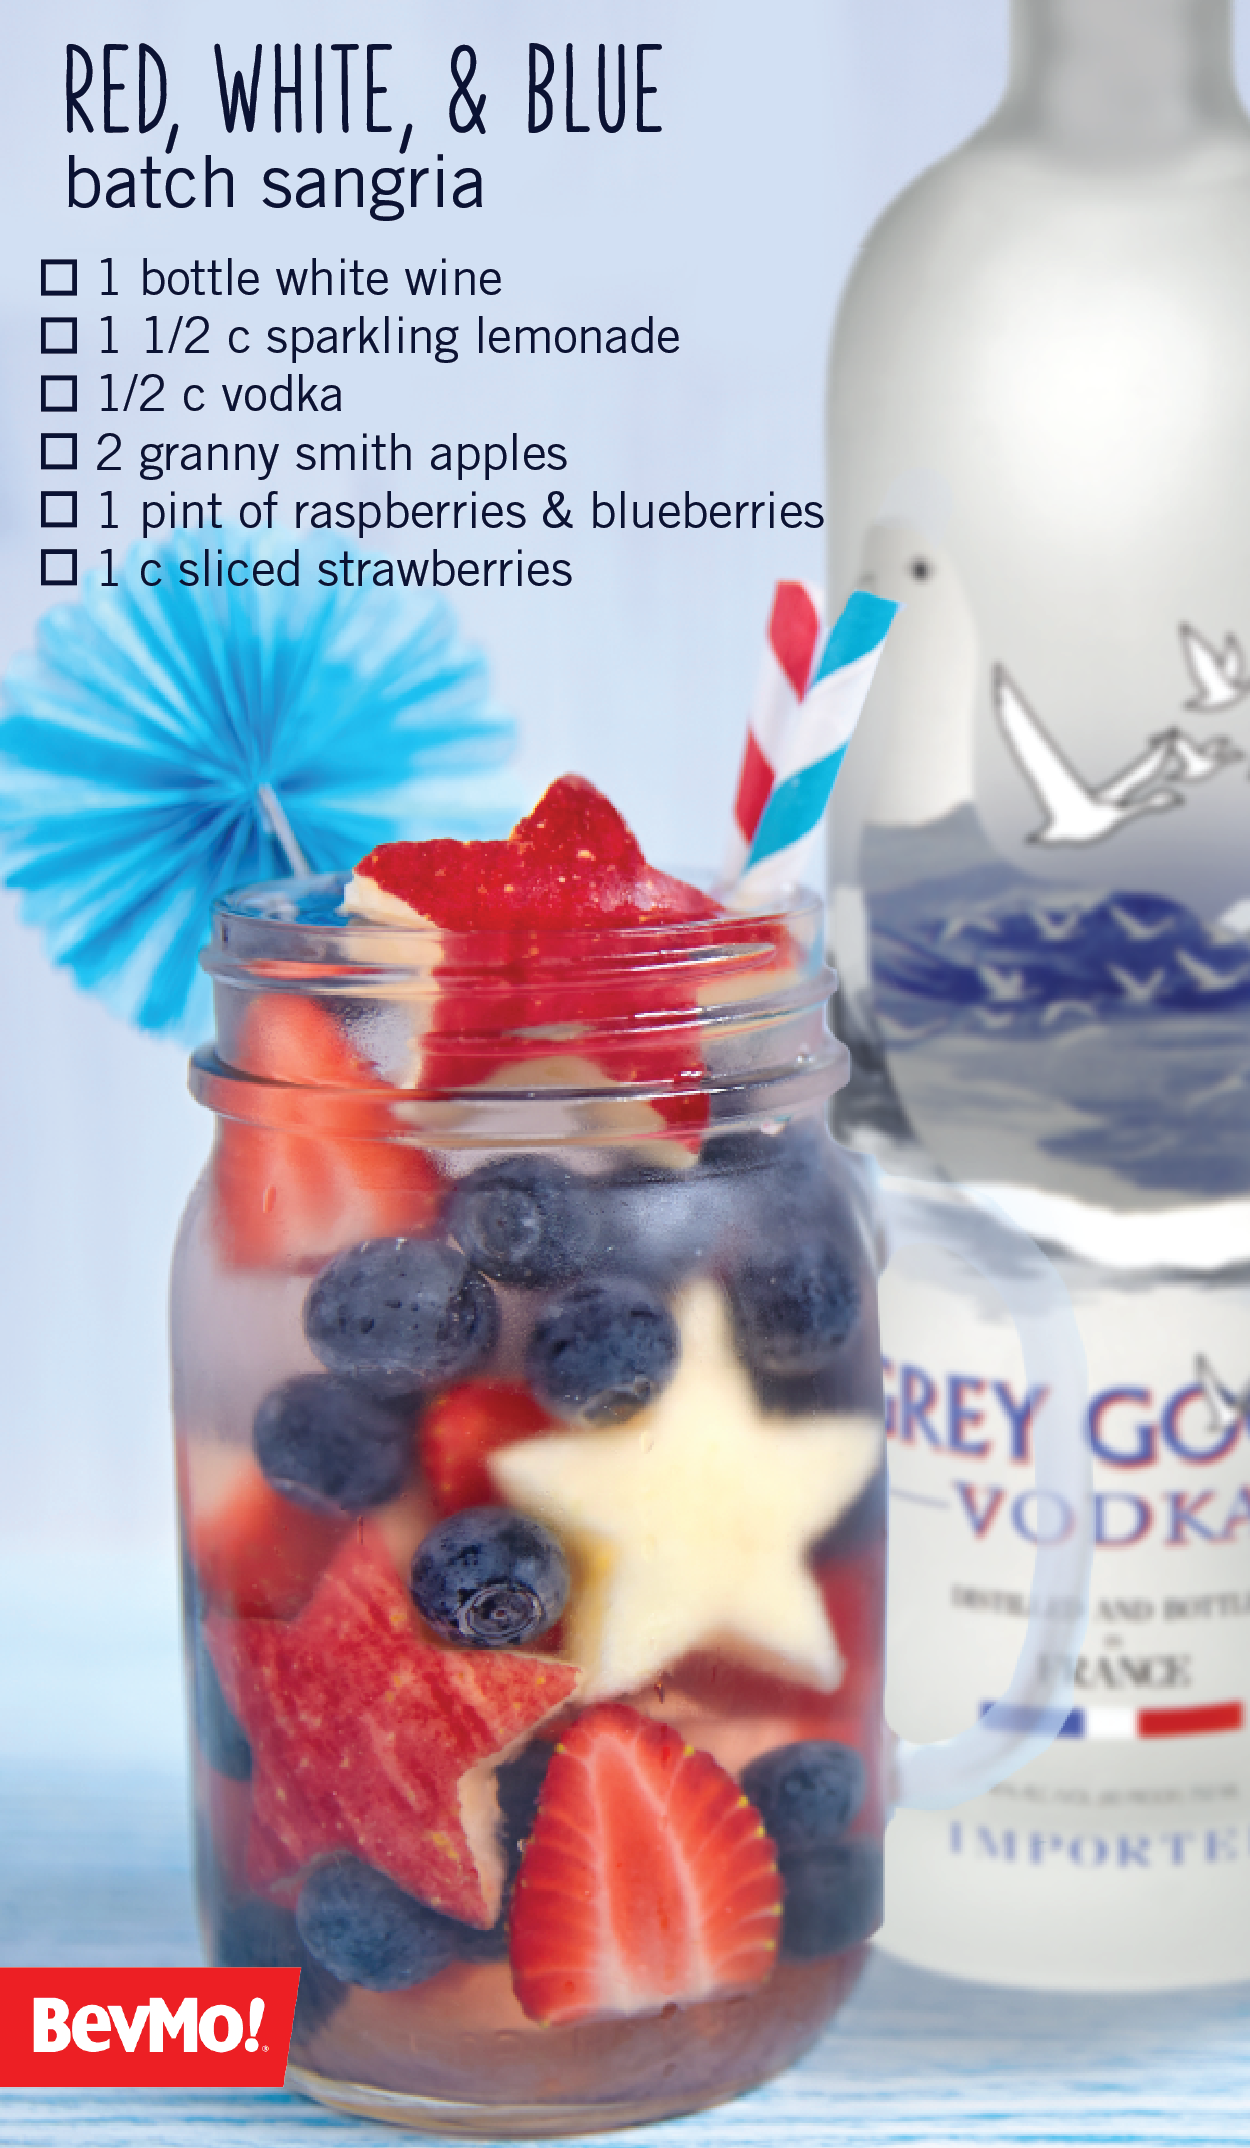 To assemble this Red white & Blue Batch Sangria start with your favorite white wine from BevMo! Then add in vodka, sparkling lemonade, star-shaped apples, strawberries, blueberries, and raspberries! A fruity patriotic drink that serves a crowd—this cocktail is a Memorial Day dream come true. #sparklinglemonade